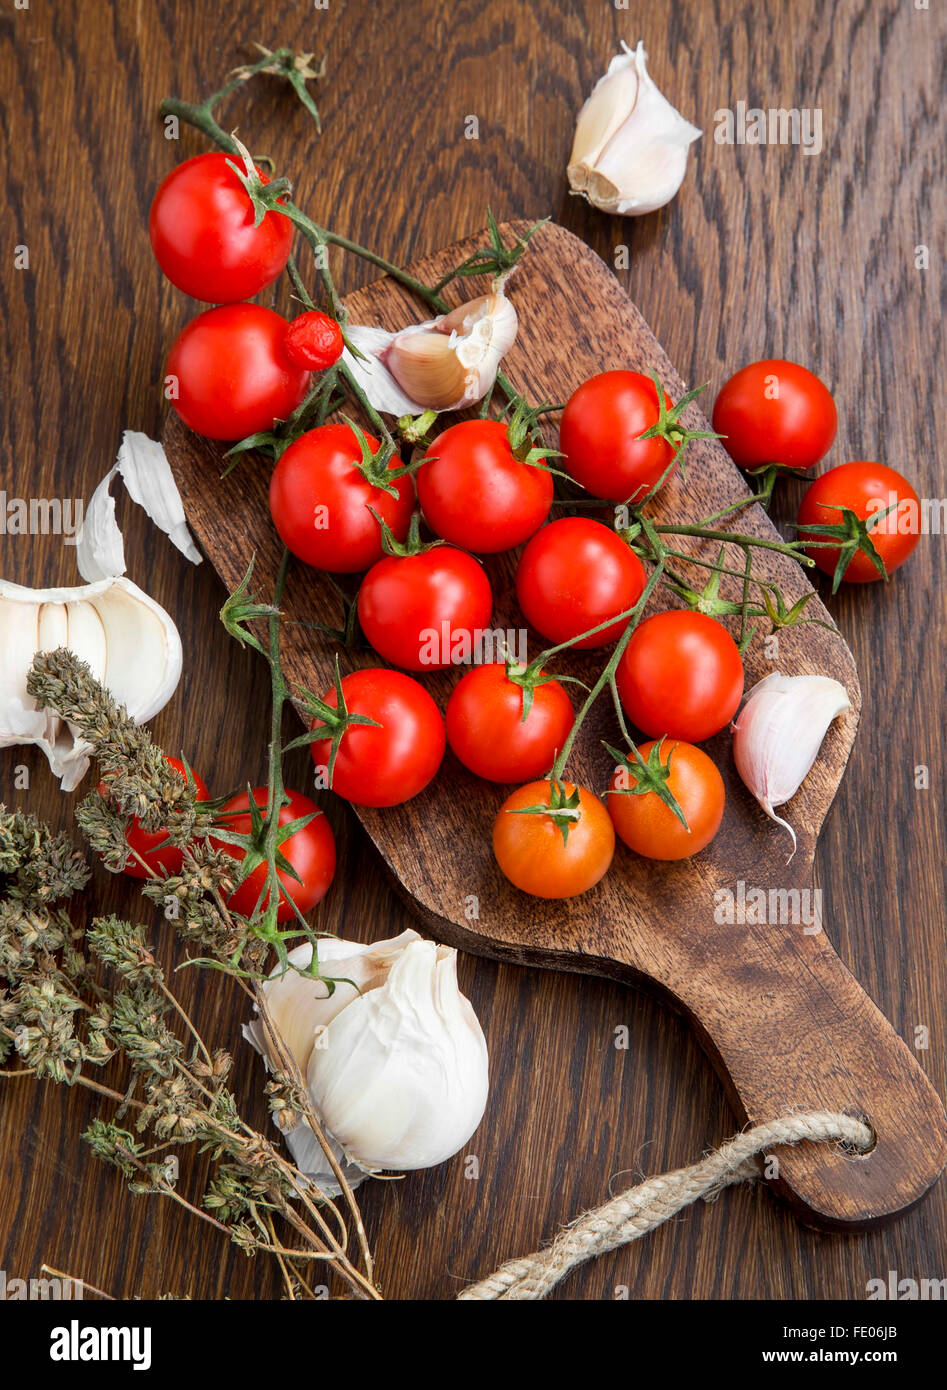 Organic cherry tomatoes with garlic and thyme herb on a wooden table - Stock Image